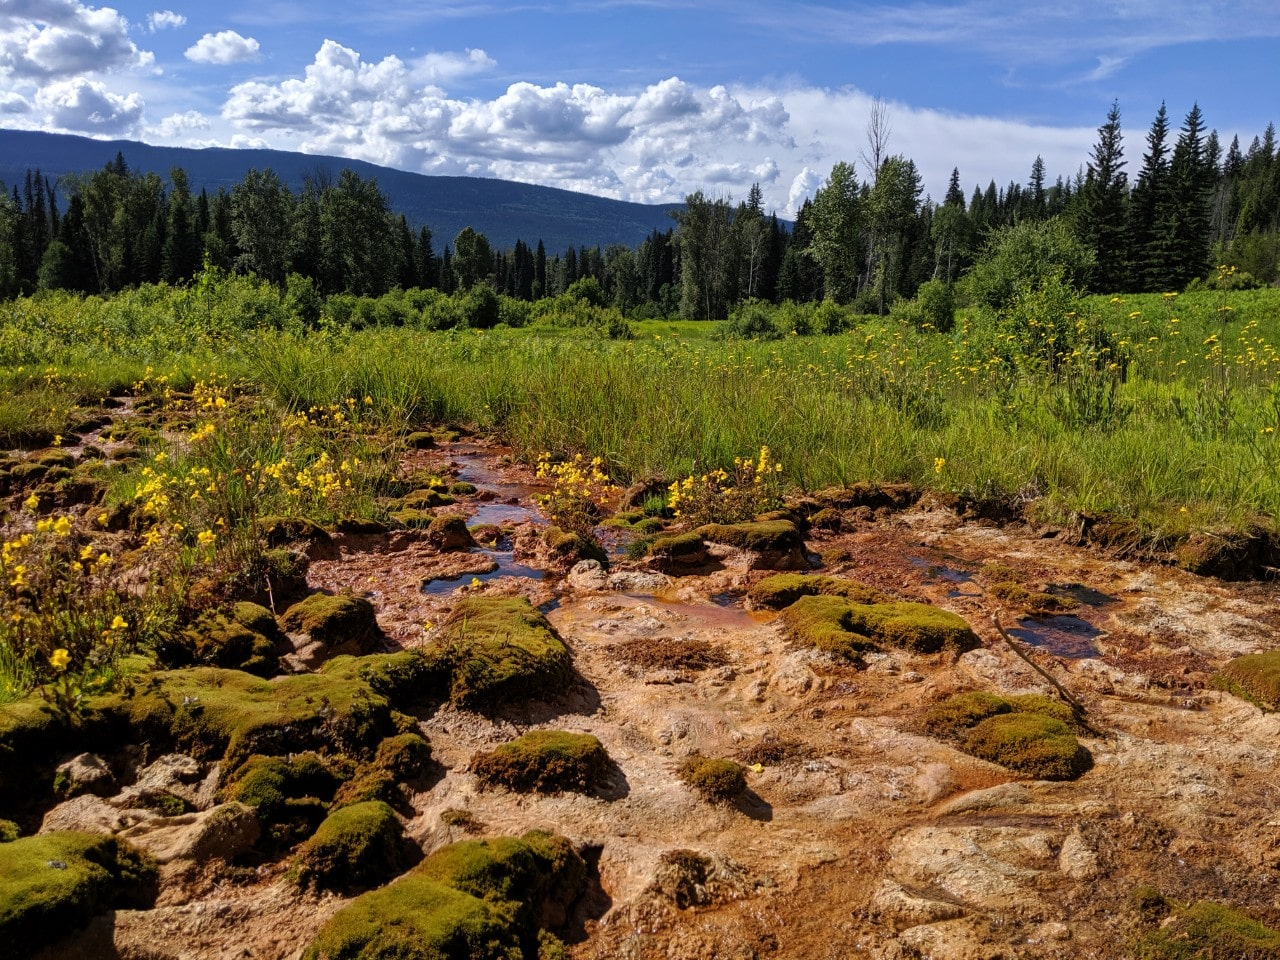 Mineral spring pools with clay ground and wildflowers in Wells Gray Provincial Park